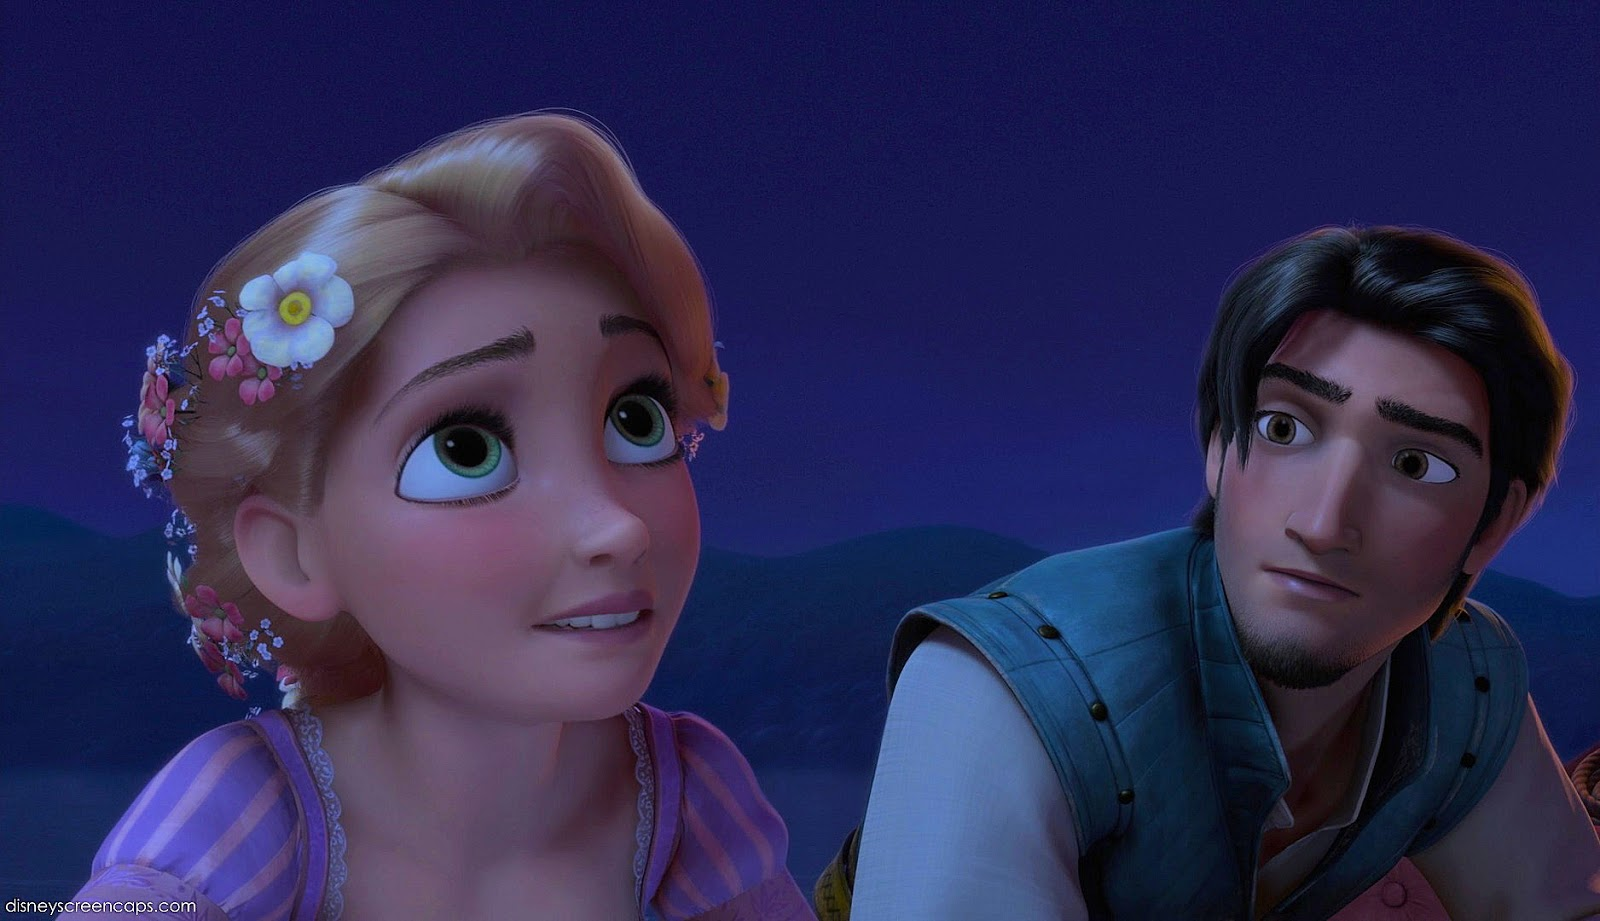 Eugene Tangled Wallpaper Tangled Rapunzel And Eugene